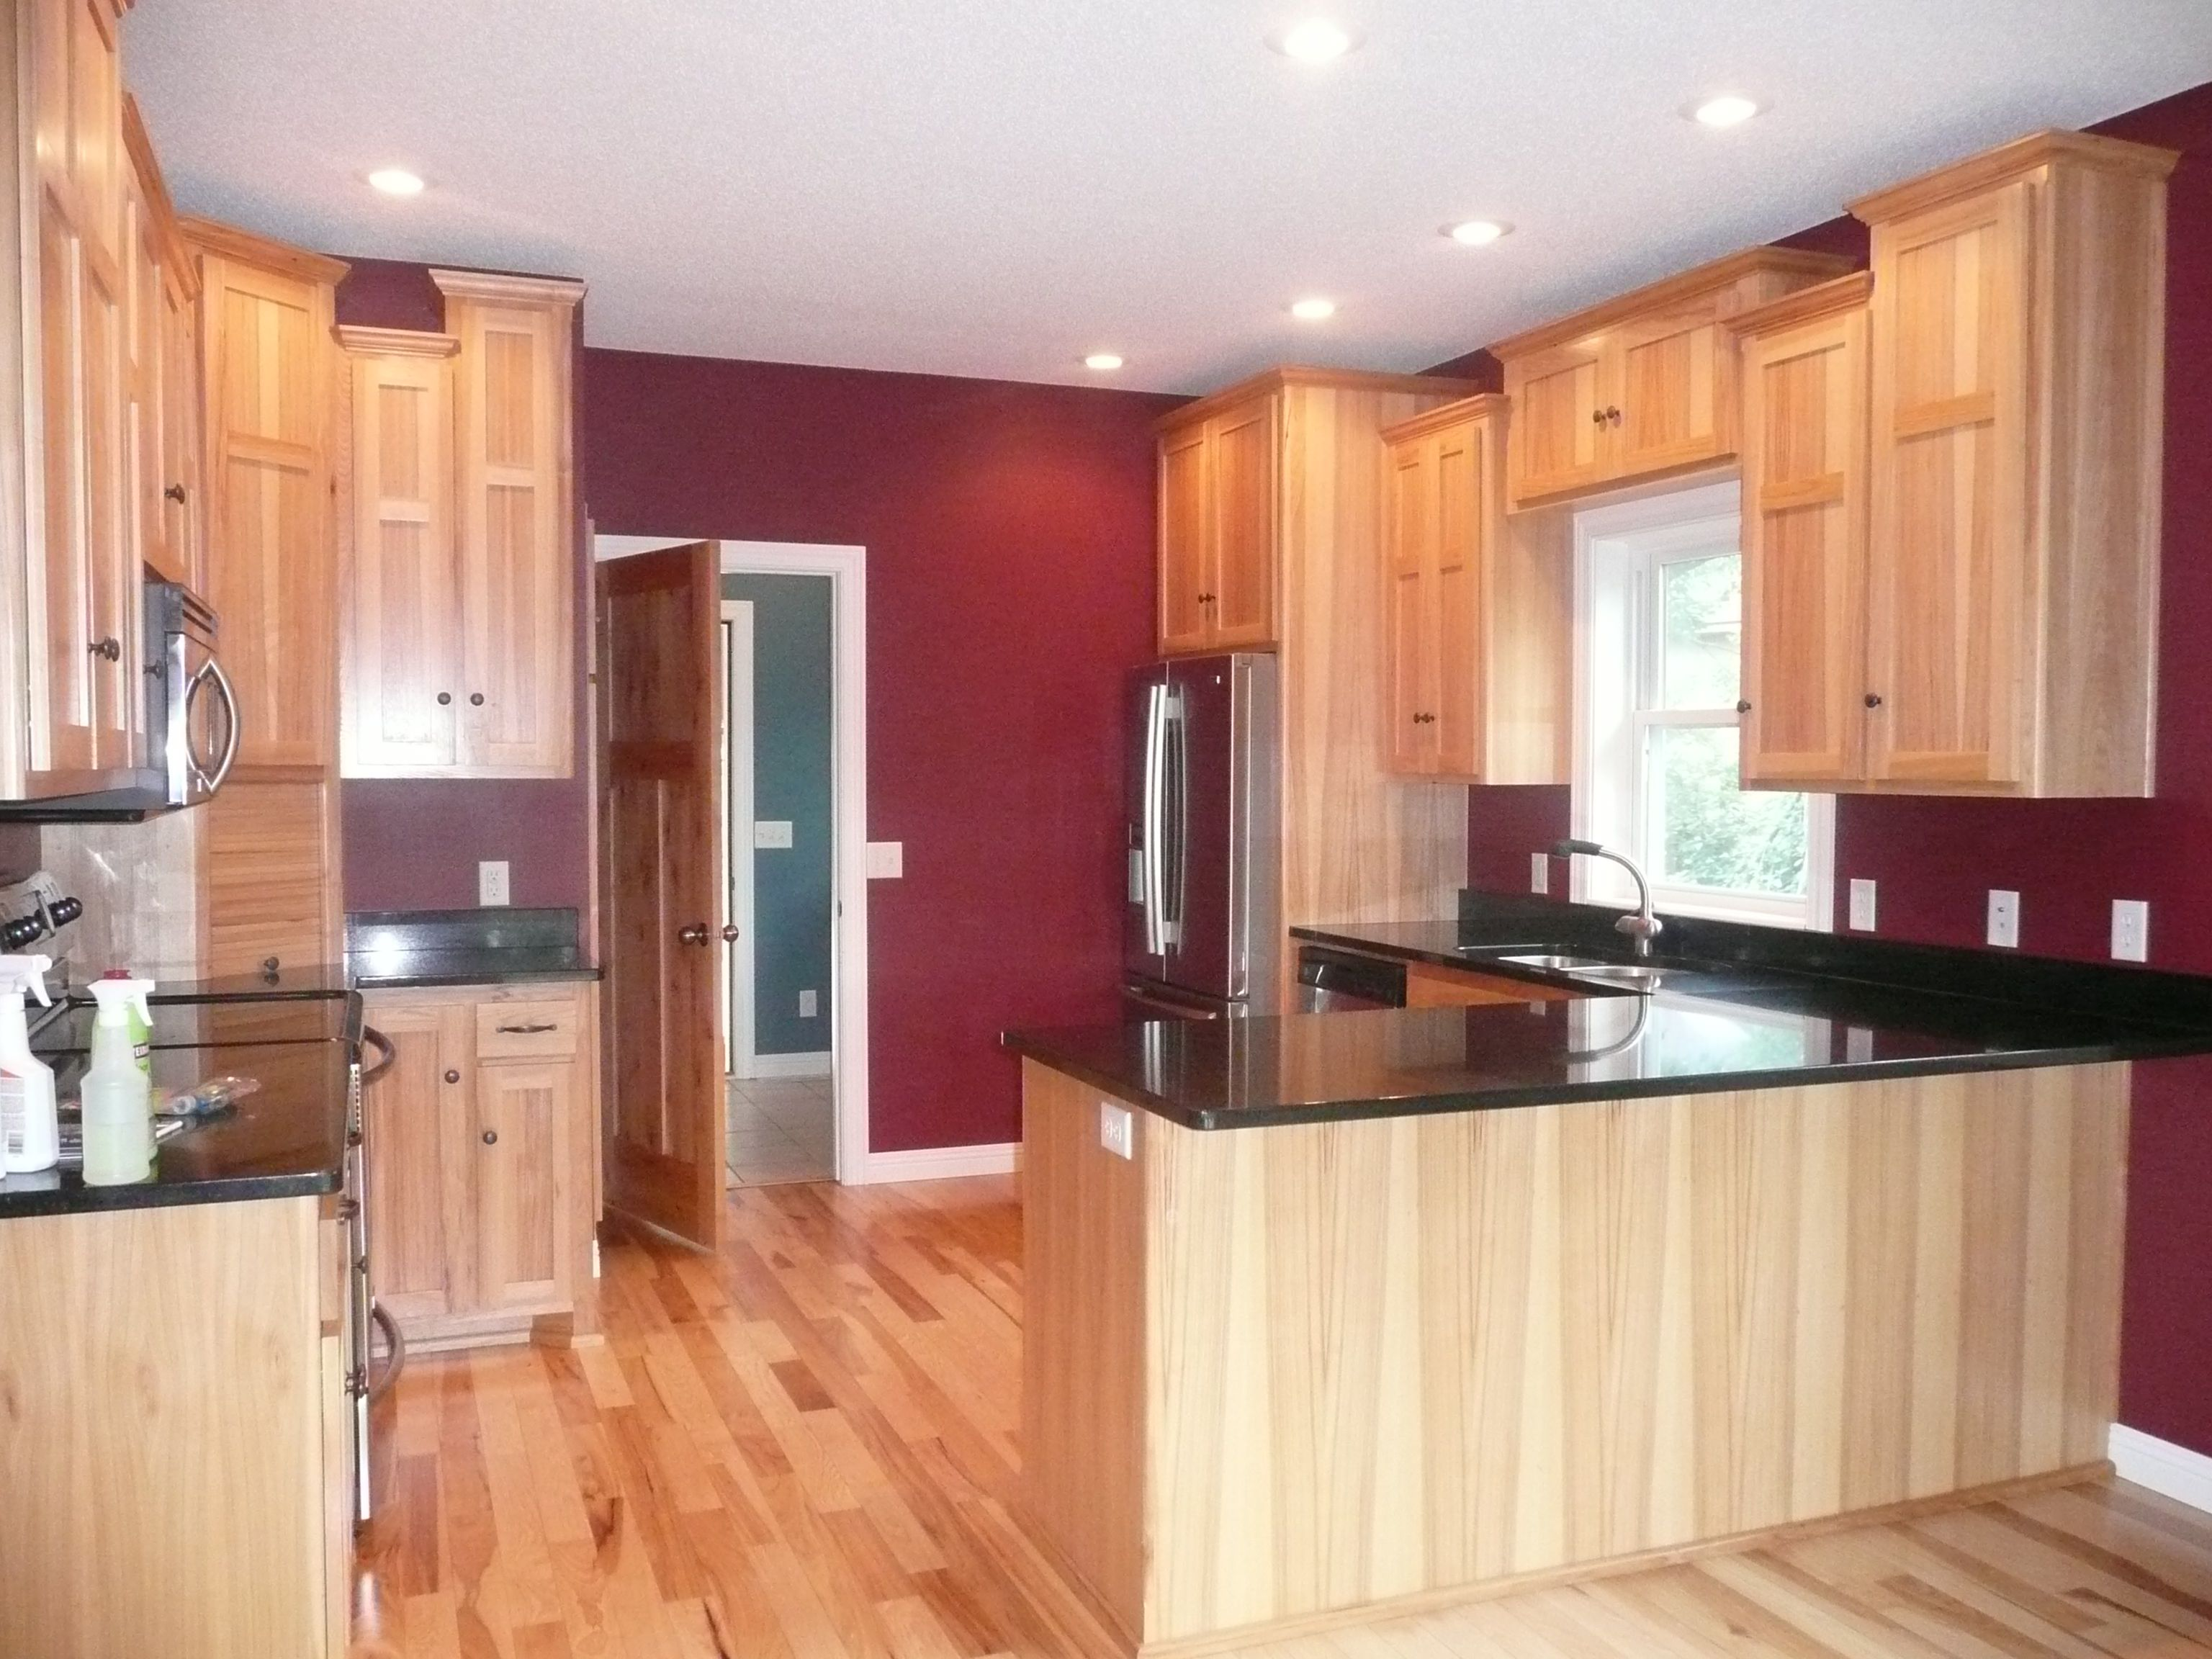 Countertop Paint Red : ... red wall kitchen kitchen models paint colors for kitchens idea paint